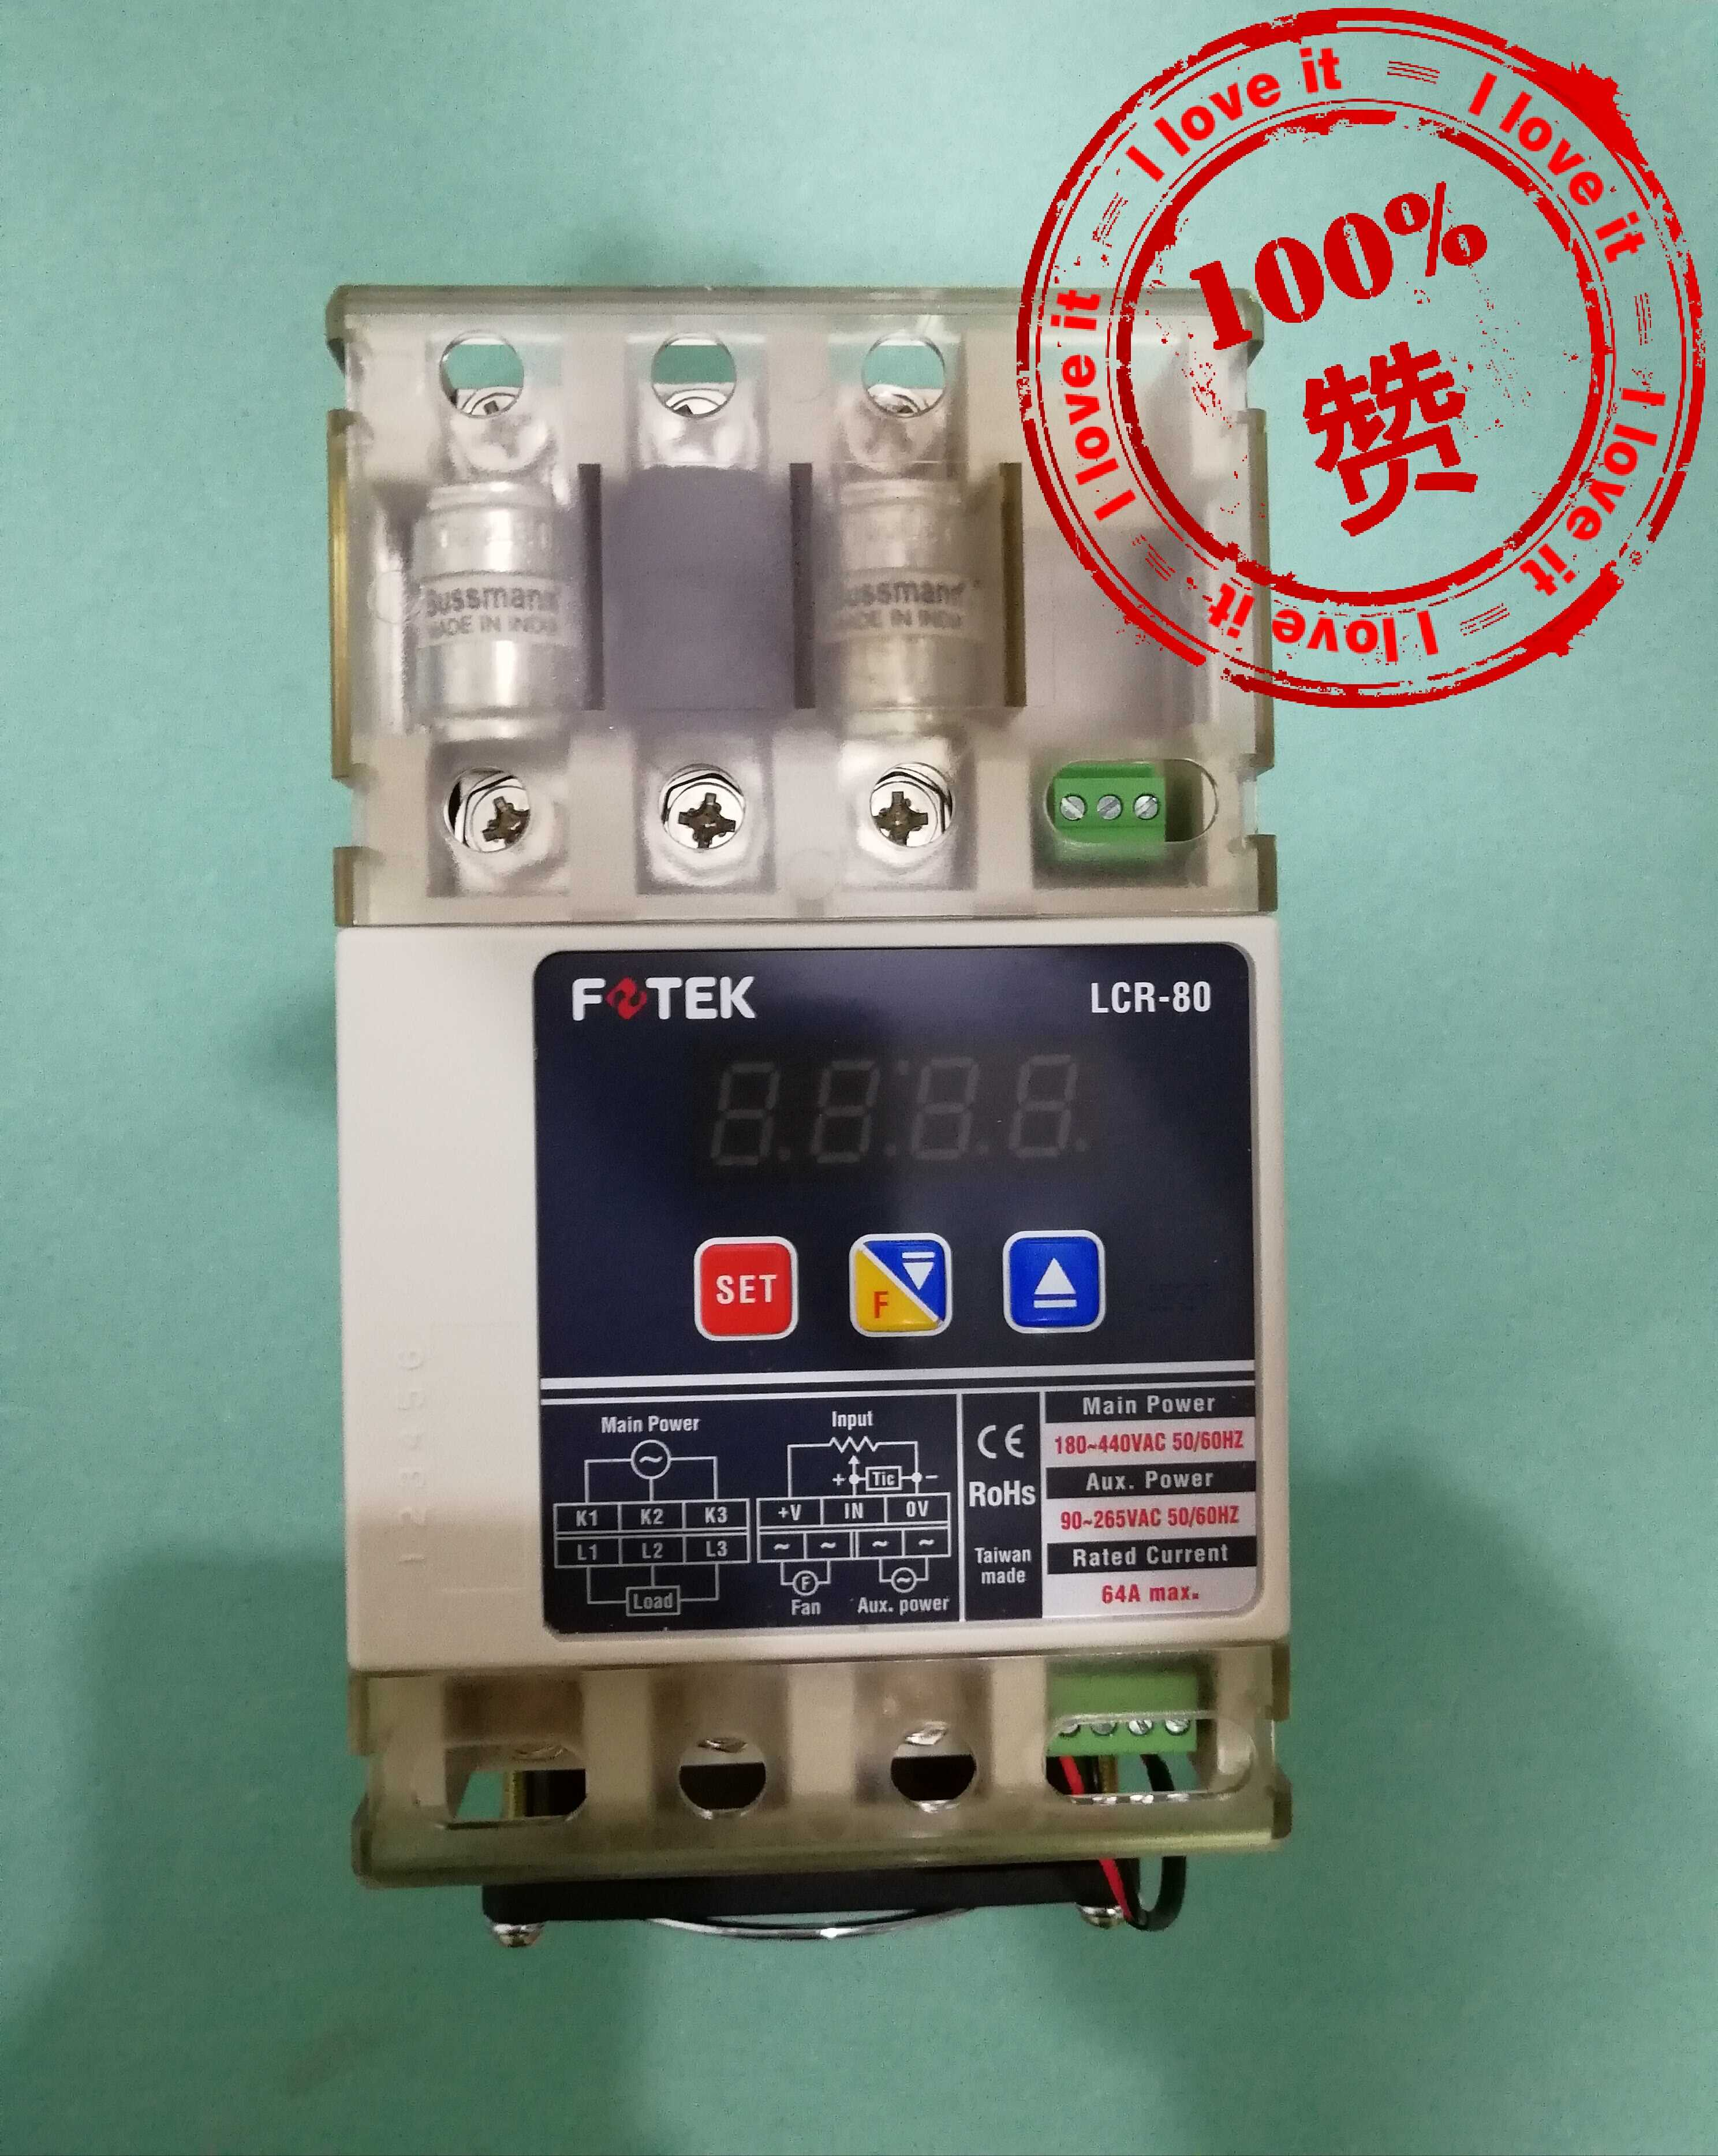 A New Imported Icr-80 Three-phase Solid State Relay LCR-80